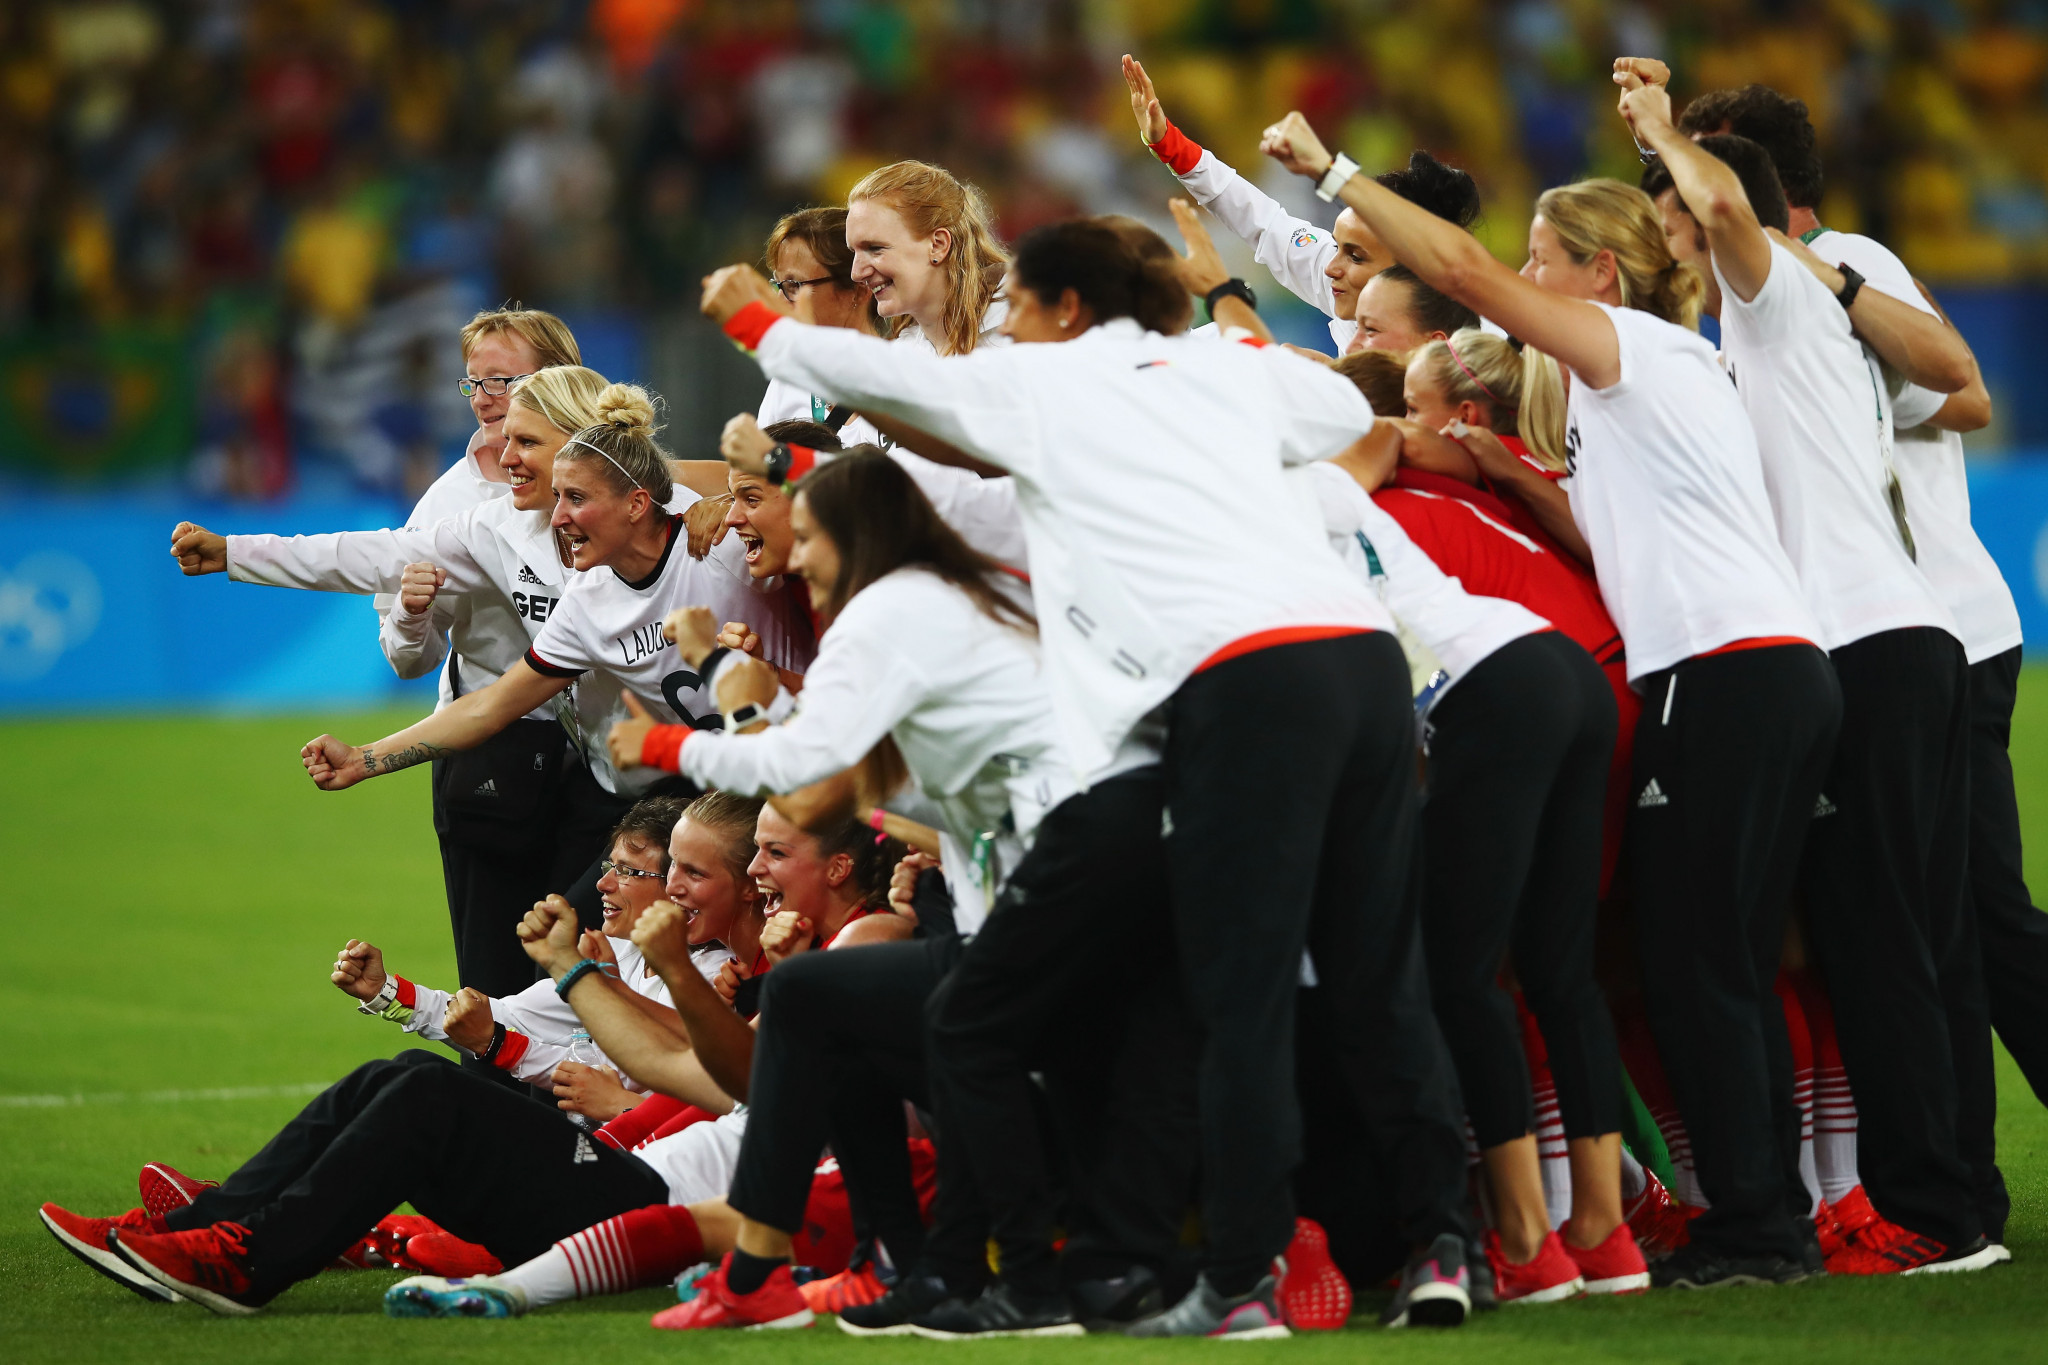 Germany won Olympic women's football gold at Rio 2016 ©Getty Images